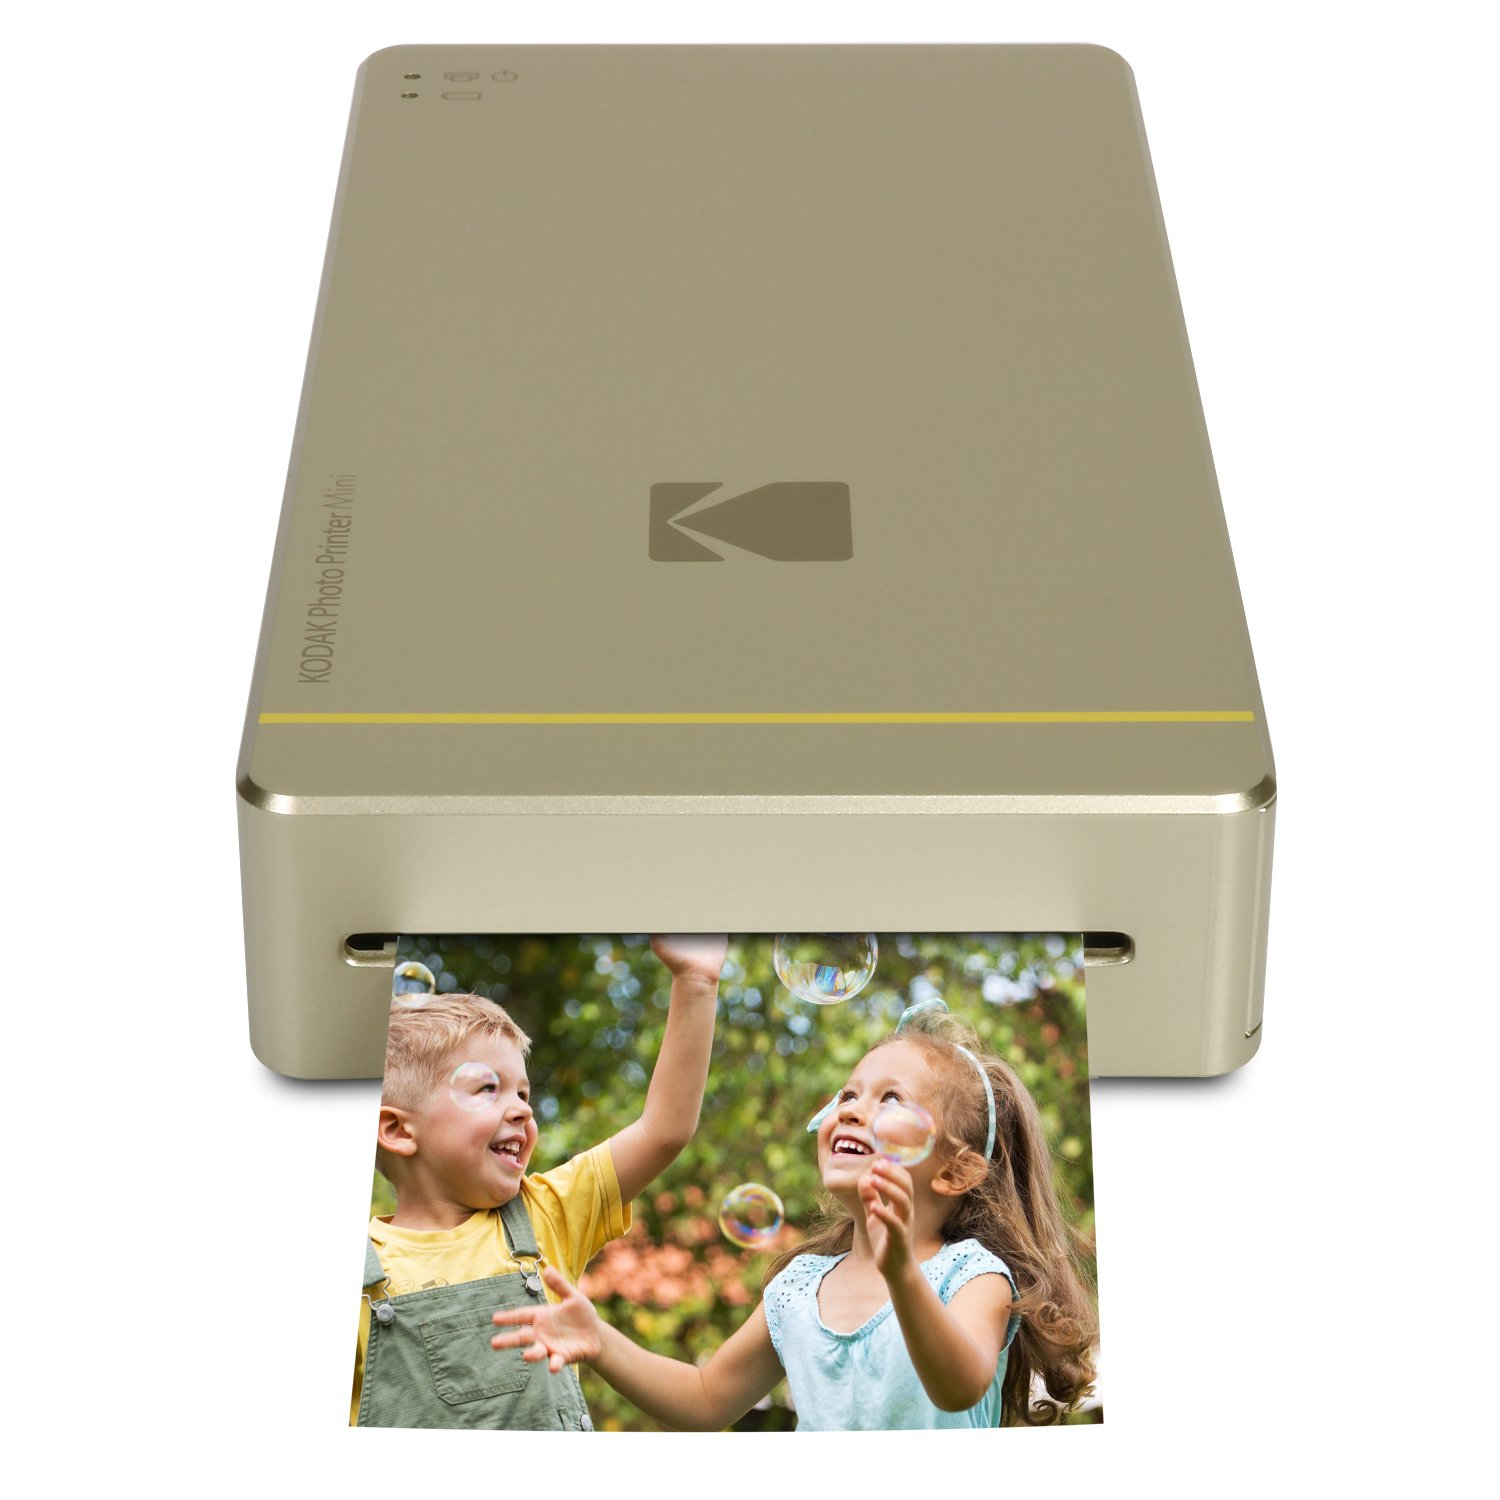 Kodak Mini Portable Mobile Instant Photo Printer - Wi-Fi & NFC Compatible - Wirelessly Prints 2.1 x 3.4 Images, Advanced DyeSub Printing Technology (Gold) Compatible with Android & iOS by KODAK